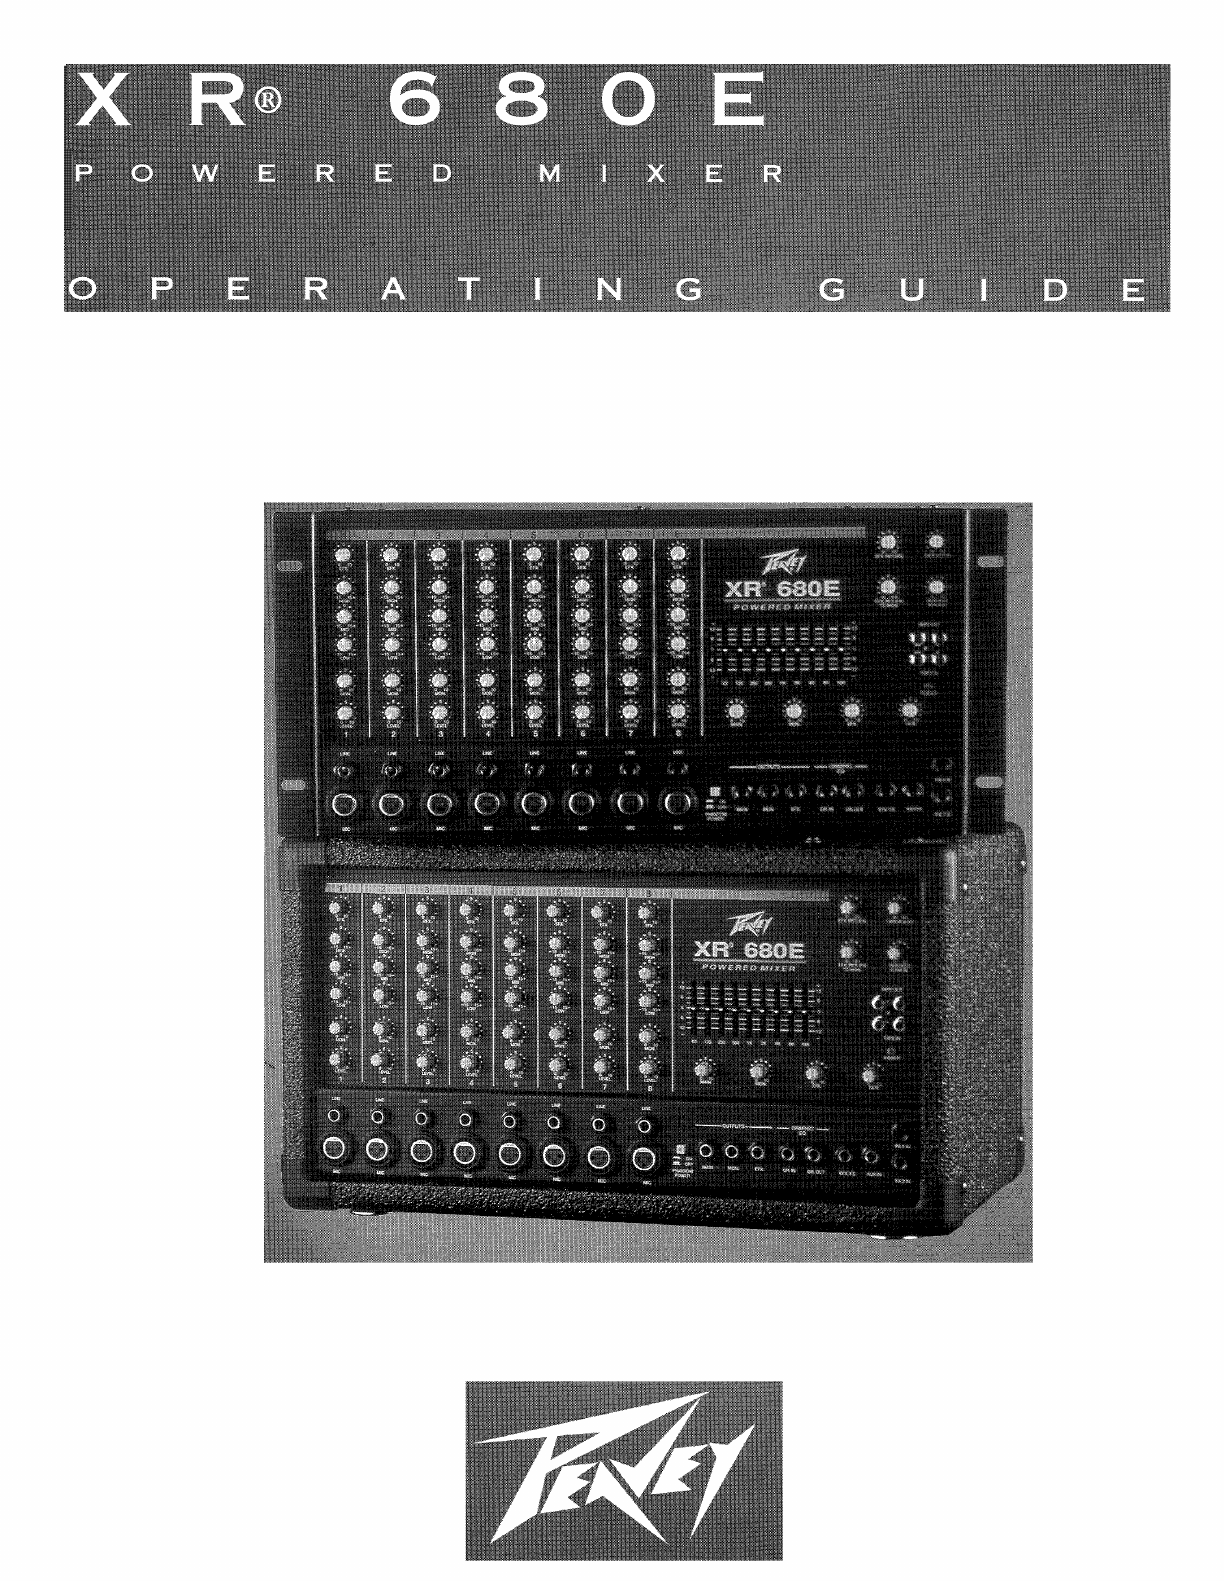 peavey music mixer xr 680e user guide manualsonline com peavey vypyr 15w modeling amp manual peavey vypyr amp review